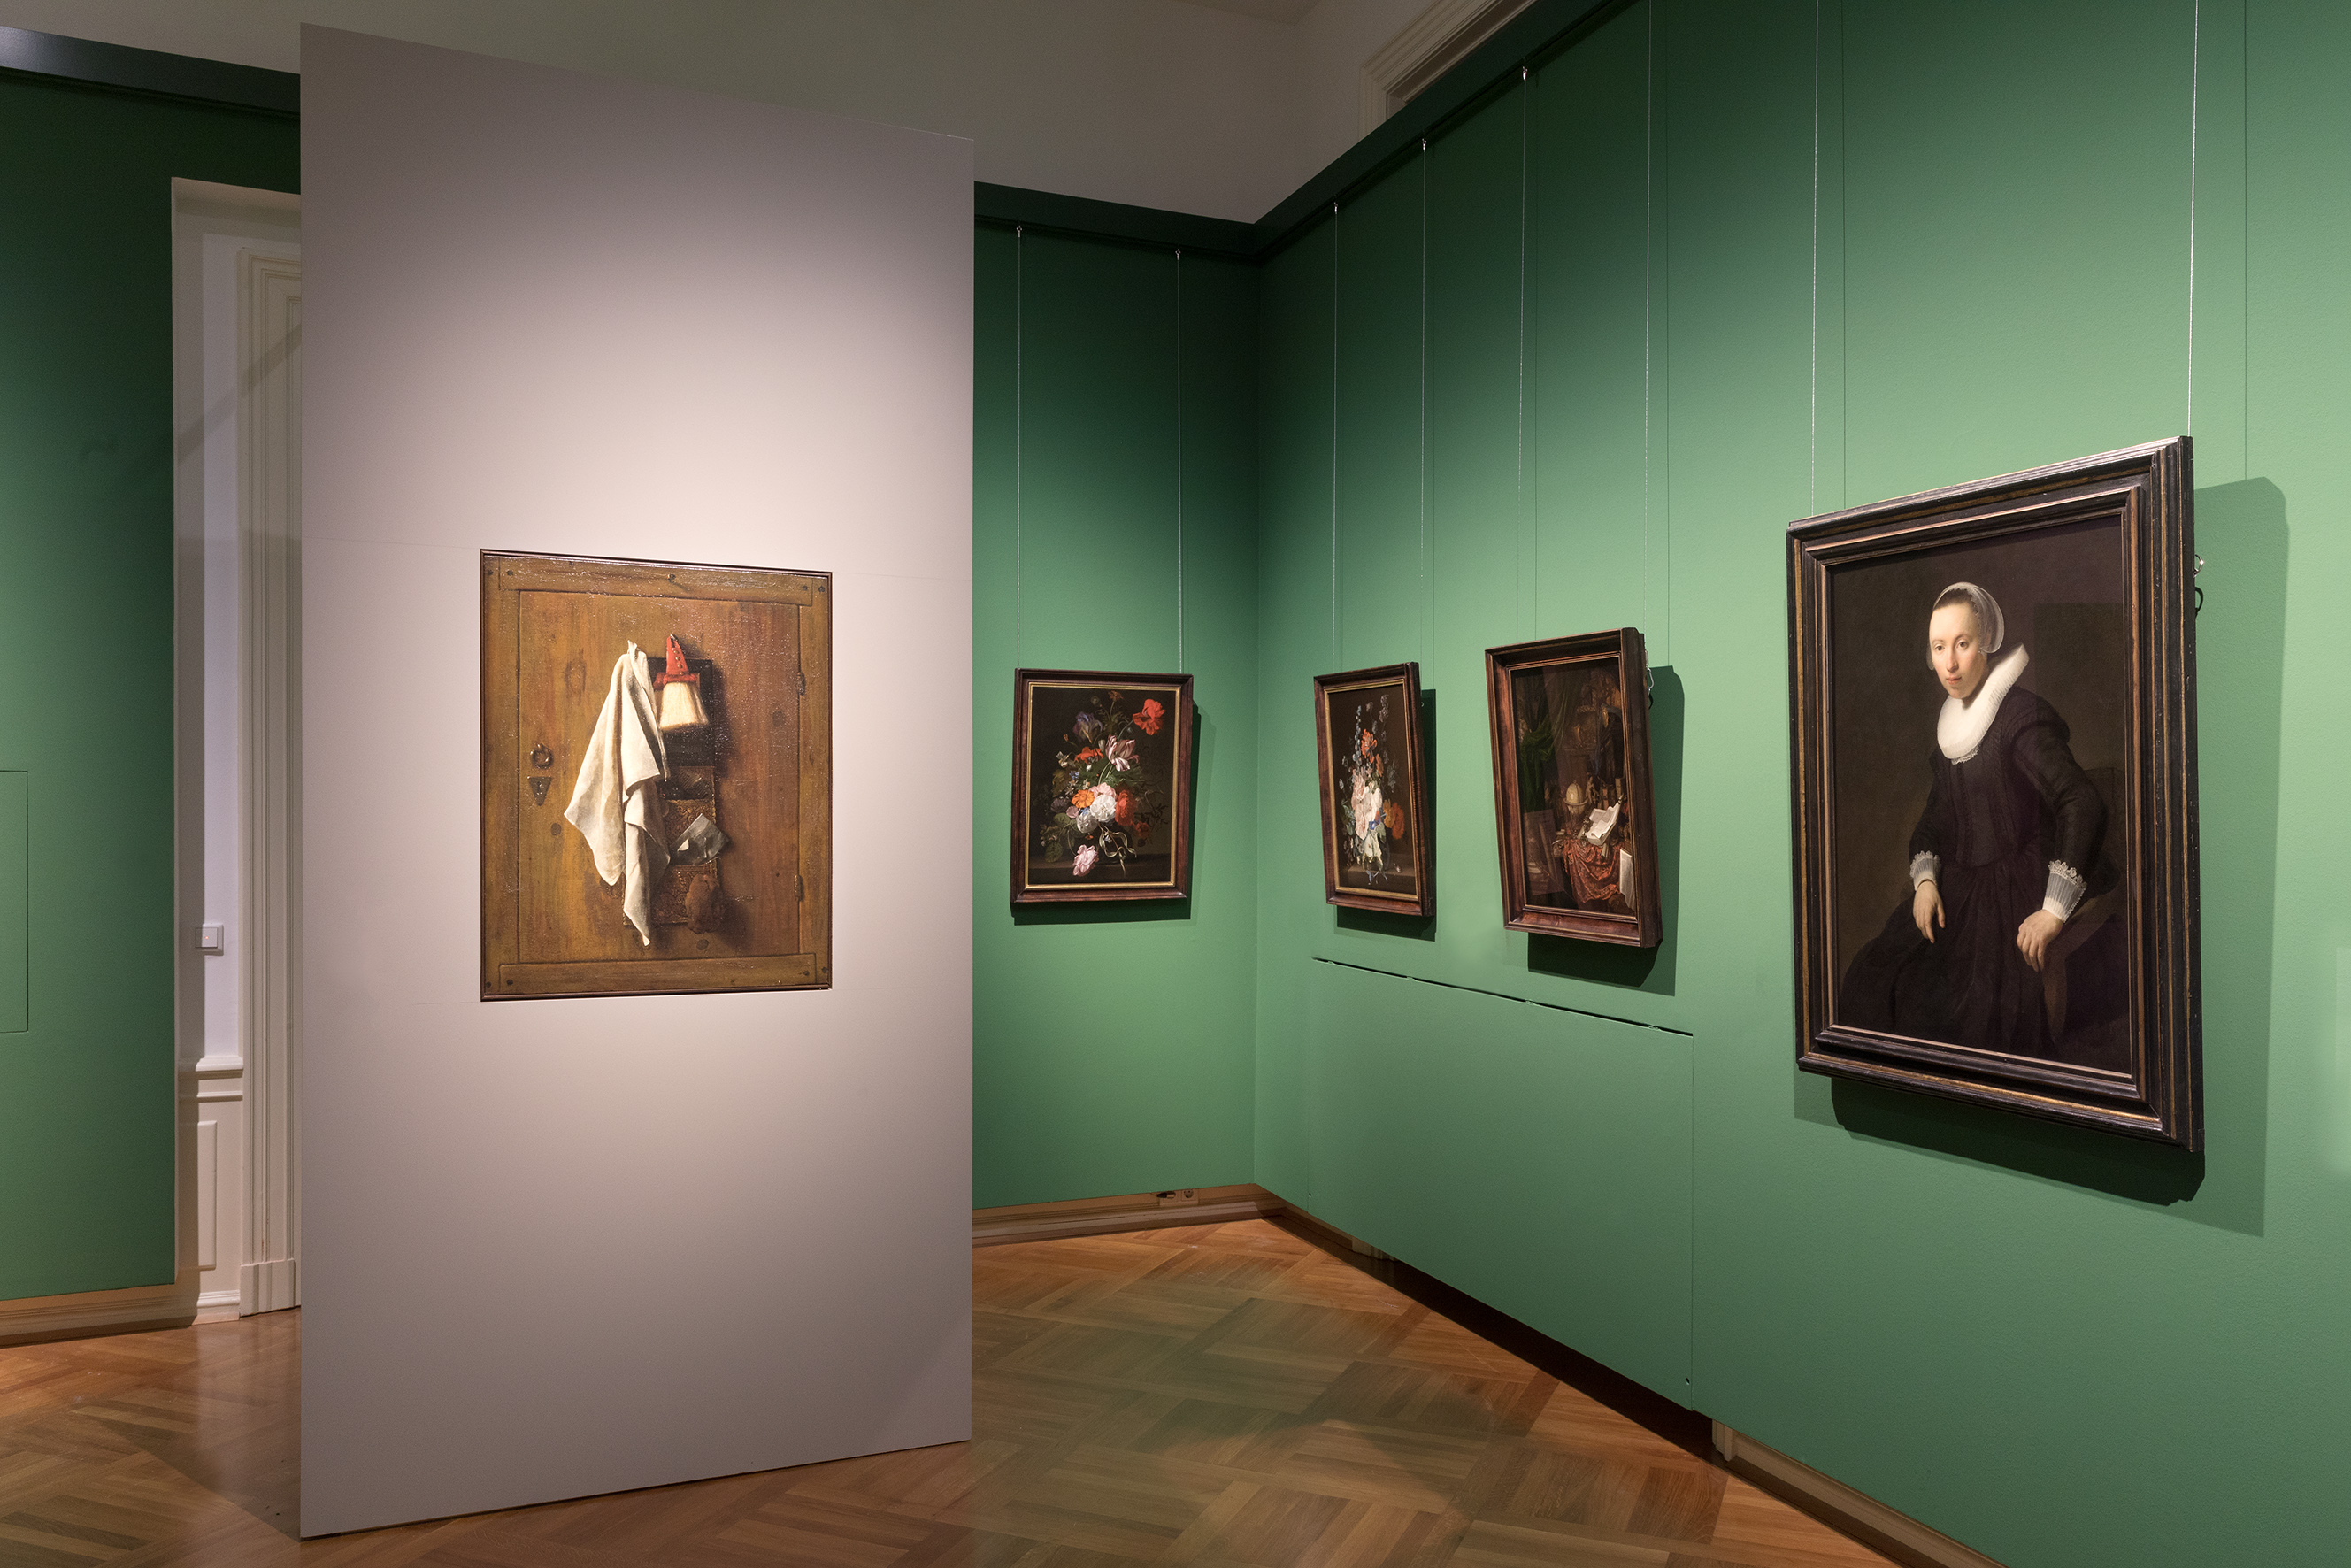 Enter Bosch: The Paintings Gallery of the Academy of Fine Arts